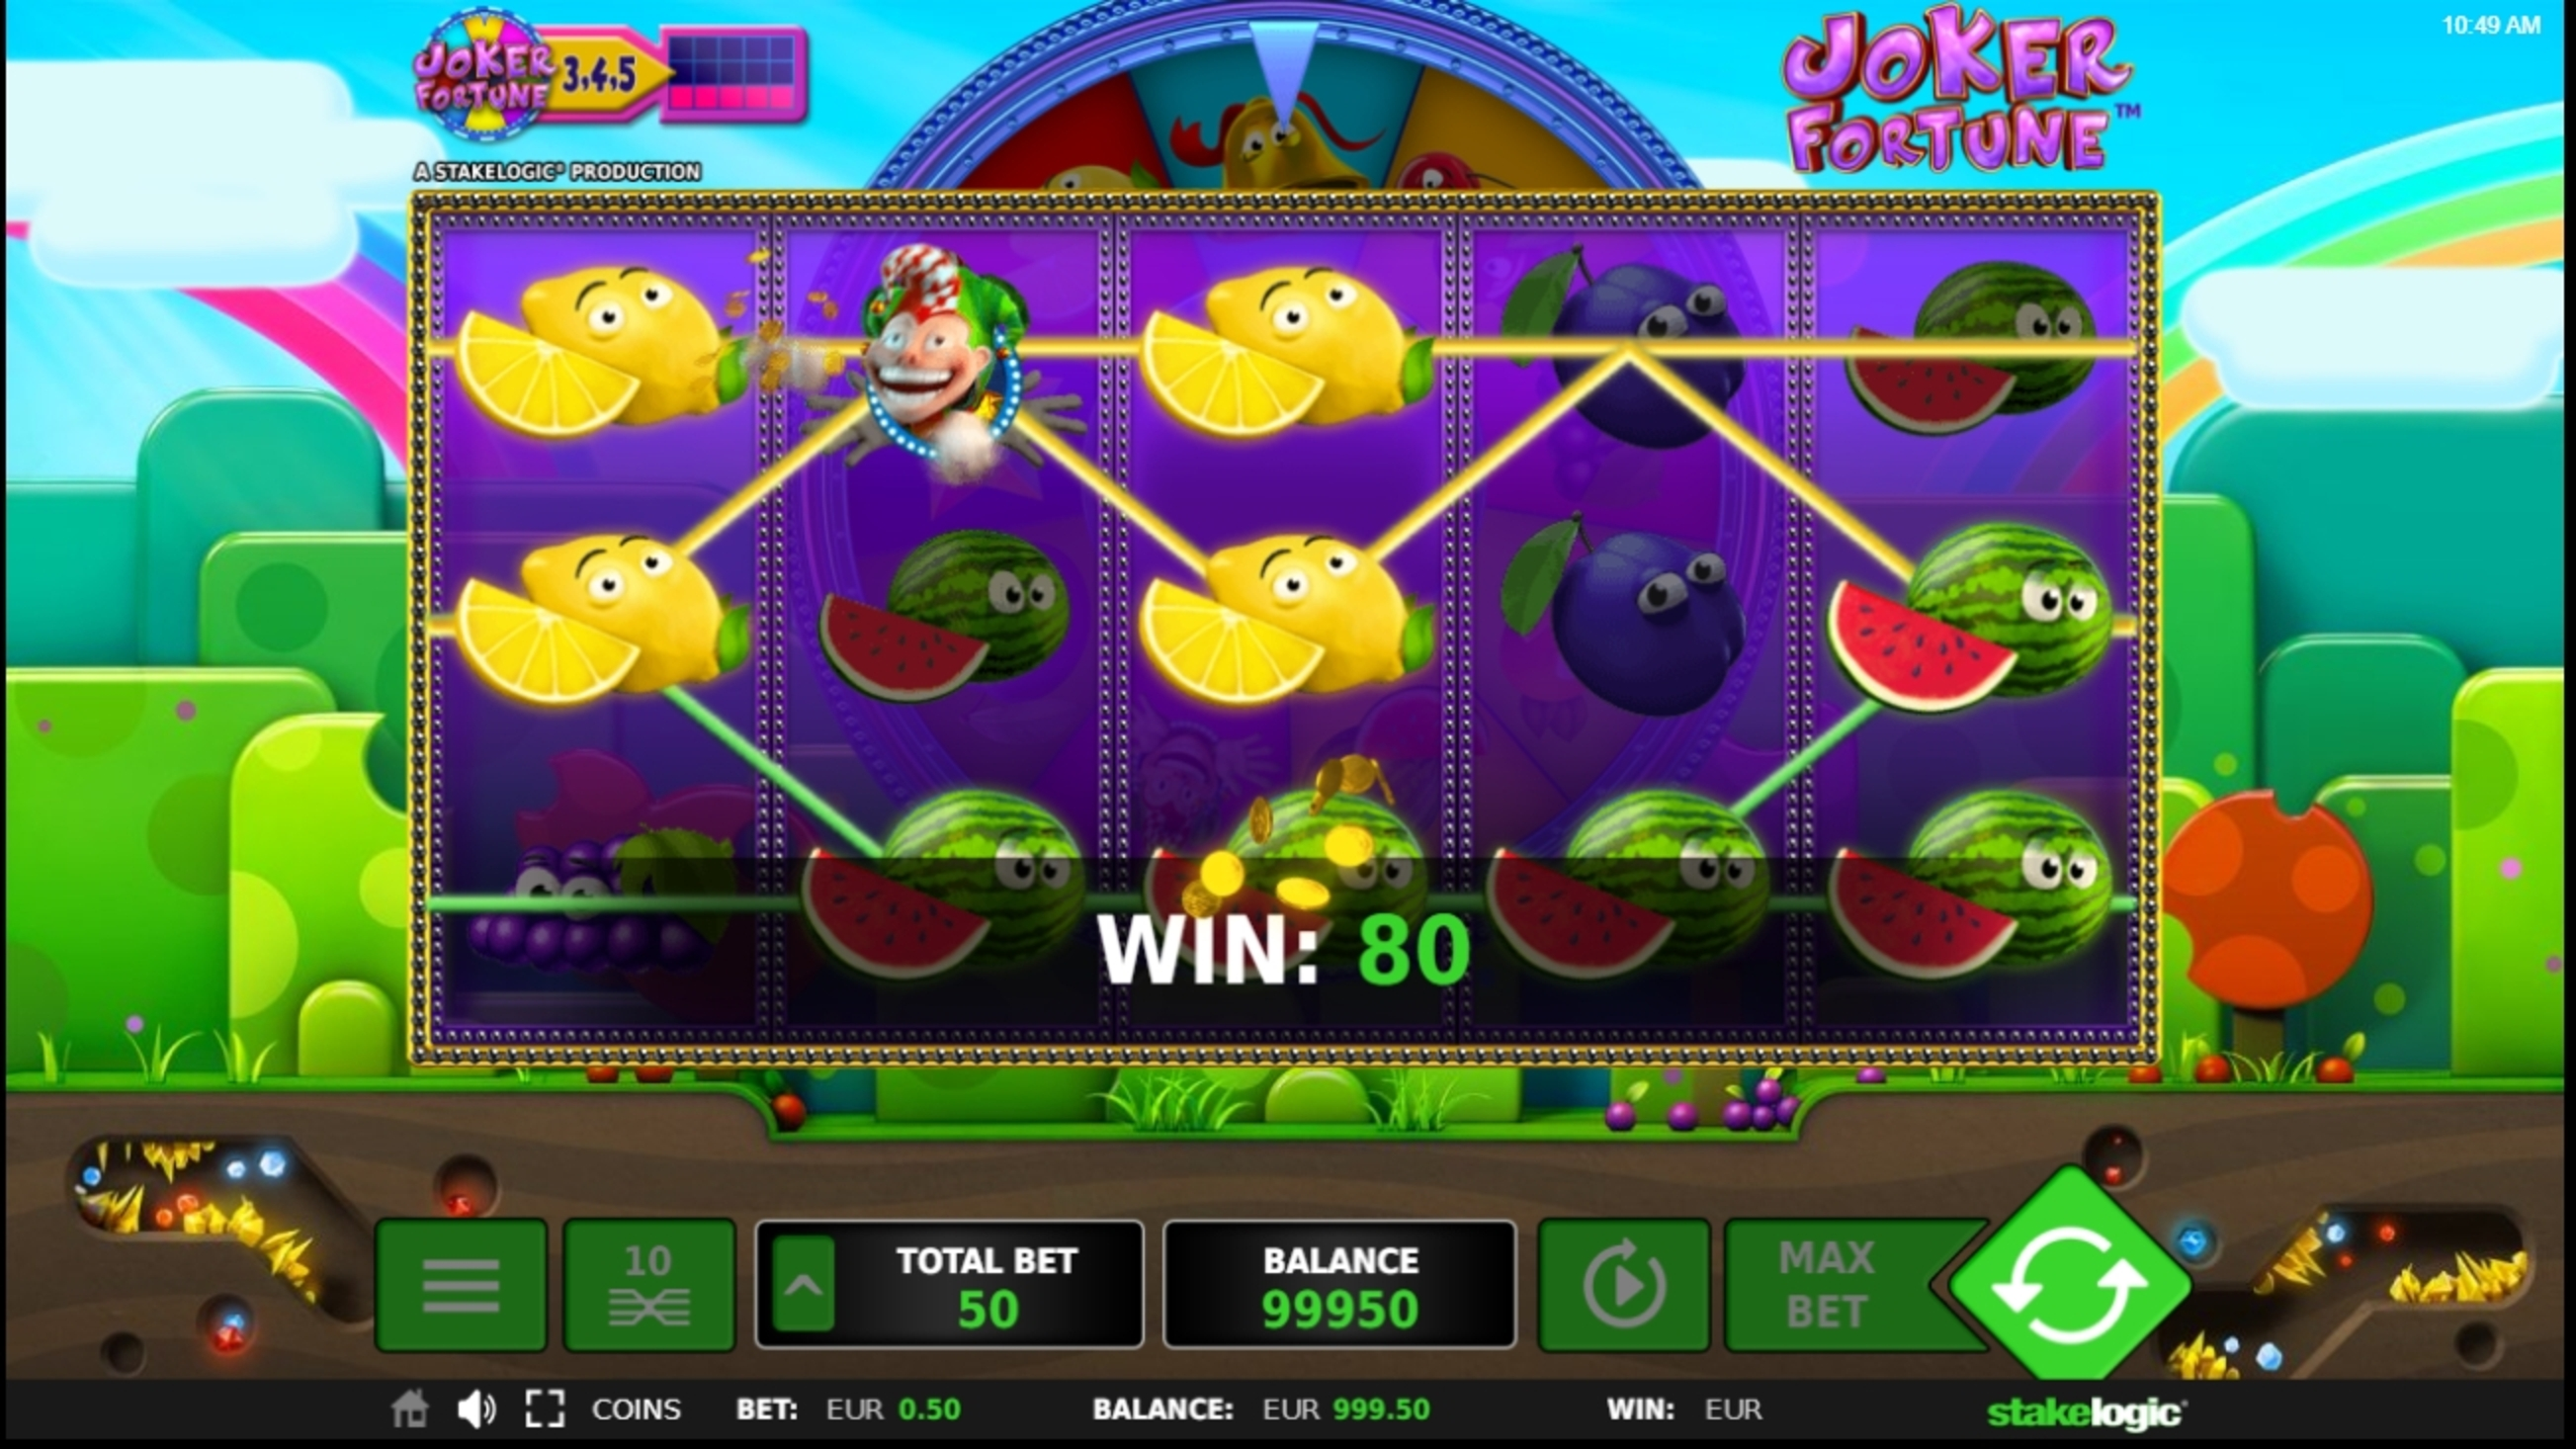 Win Money in Joker Fortune Free Slot Game by StakeLogic